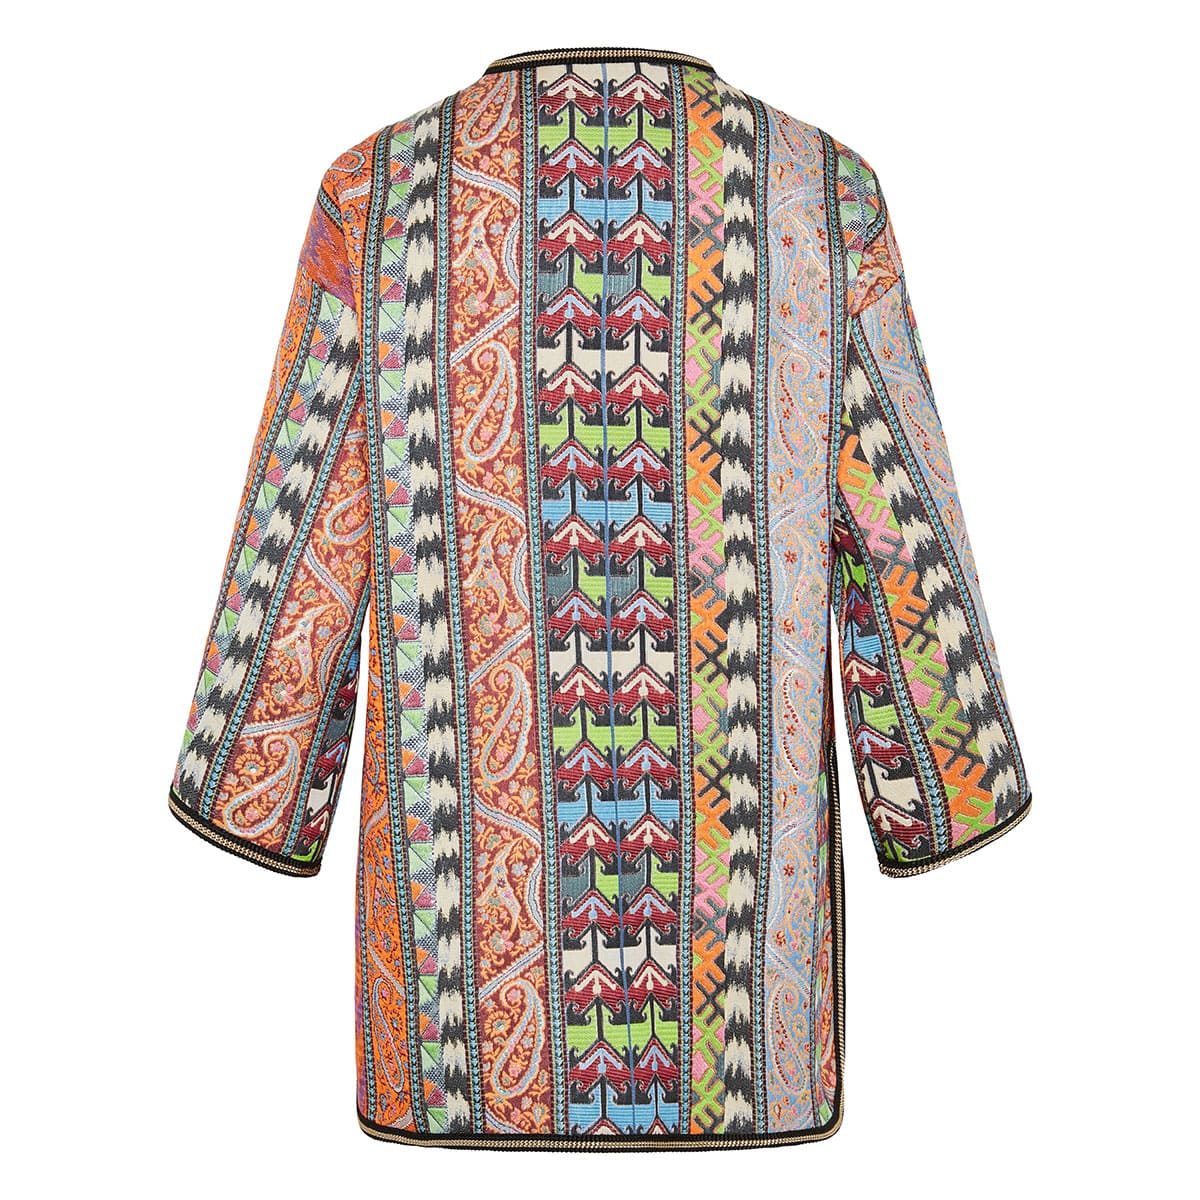 Patchwork printed embroidered kimono jacket